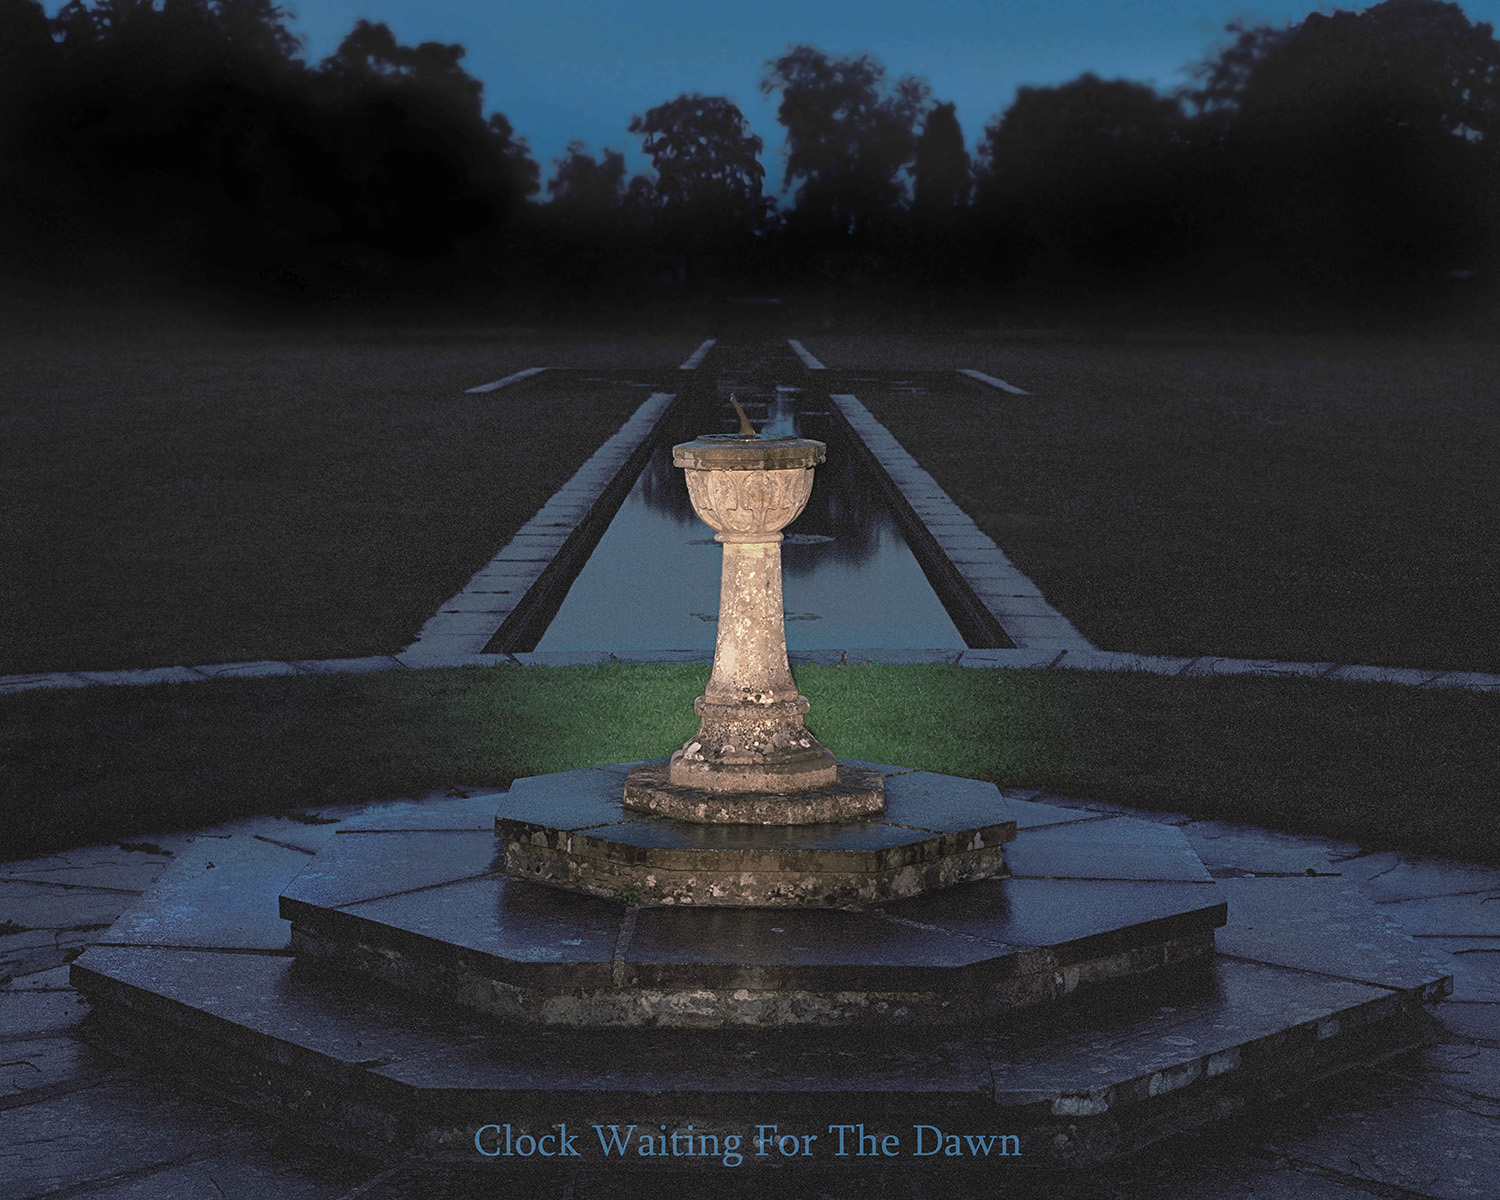 5_Clock Waiting for the Dawn_Dyffryn House